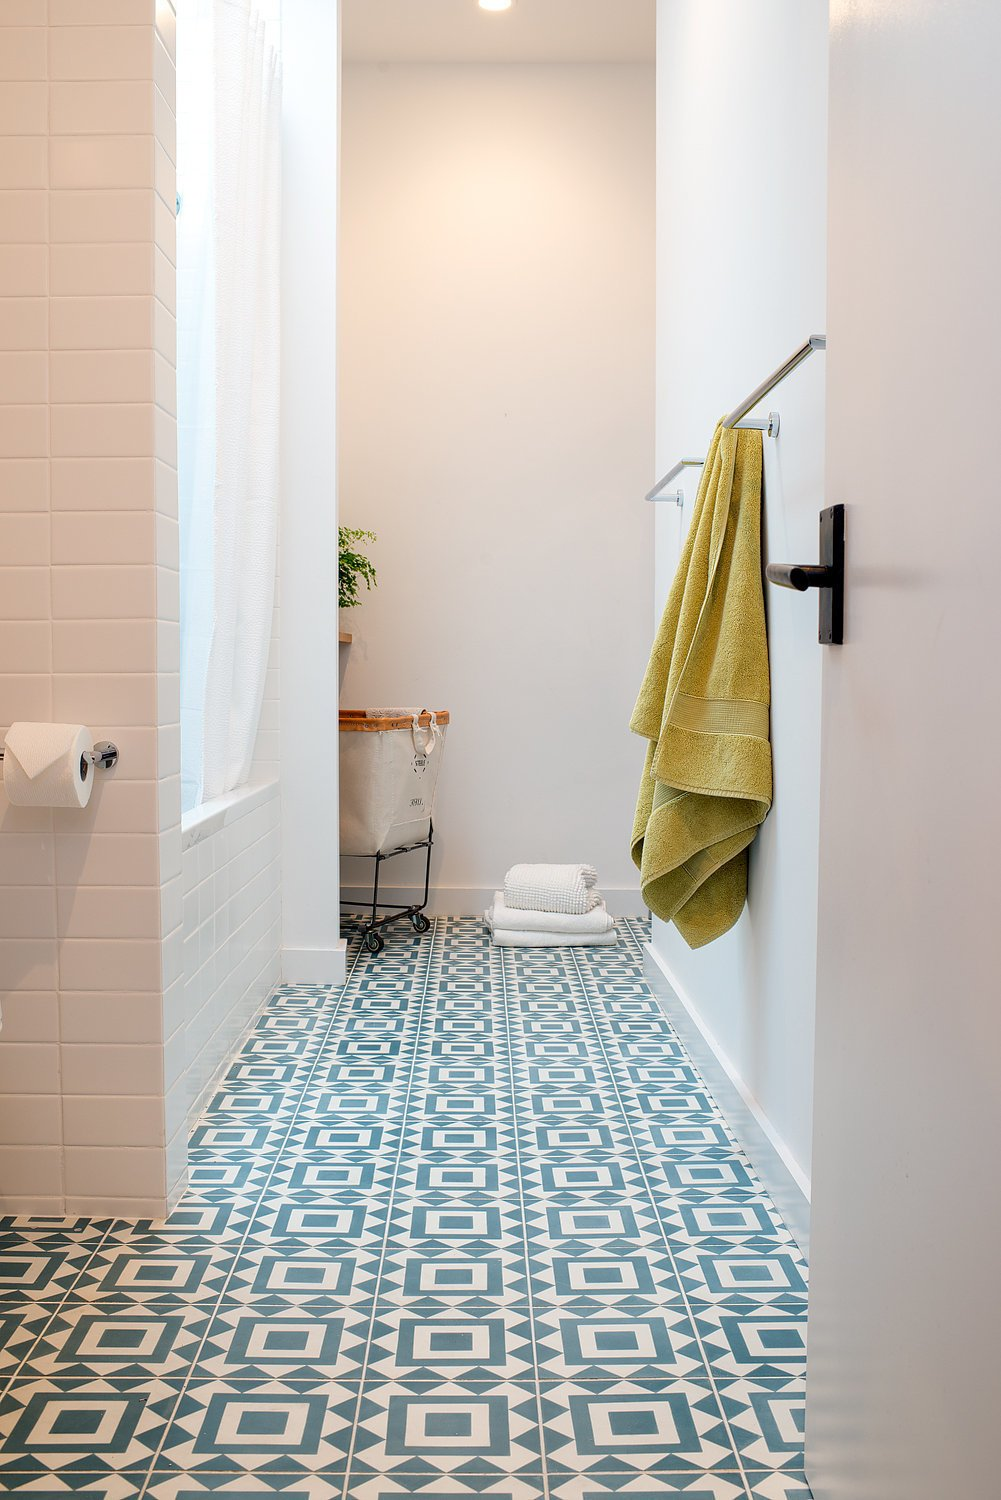 Bath Room, Ceramic Tile Floor, and Subway Tile Wall An existing lightwell was filled-in to create space for a concealed laundry area at the rear of the main bathroom. Soft natural light pours in from the skylight over the tub.  Chenery Street Remodel by SF Design Build